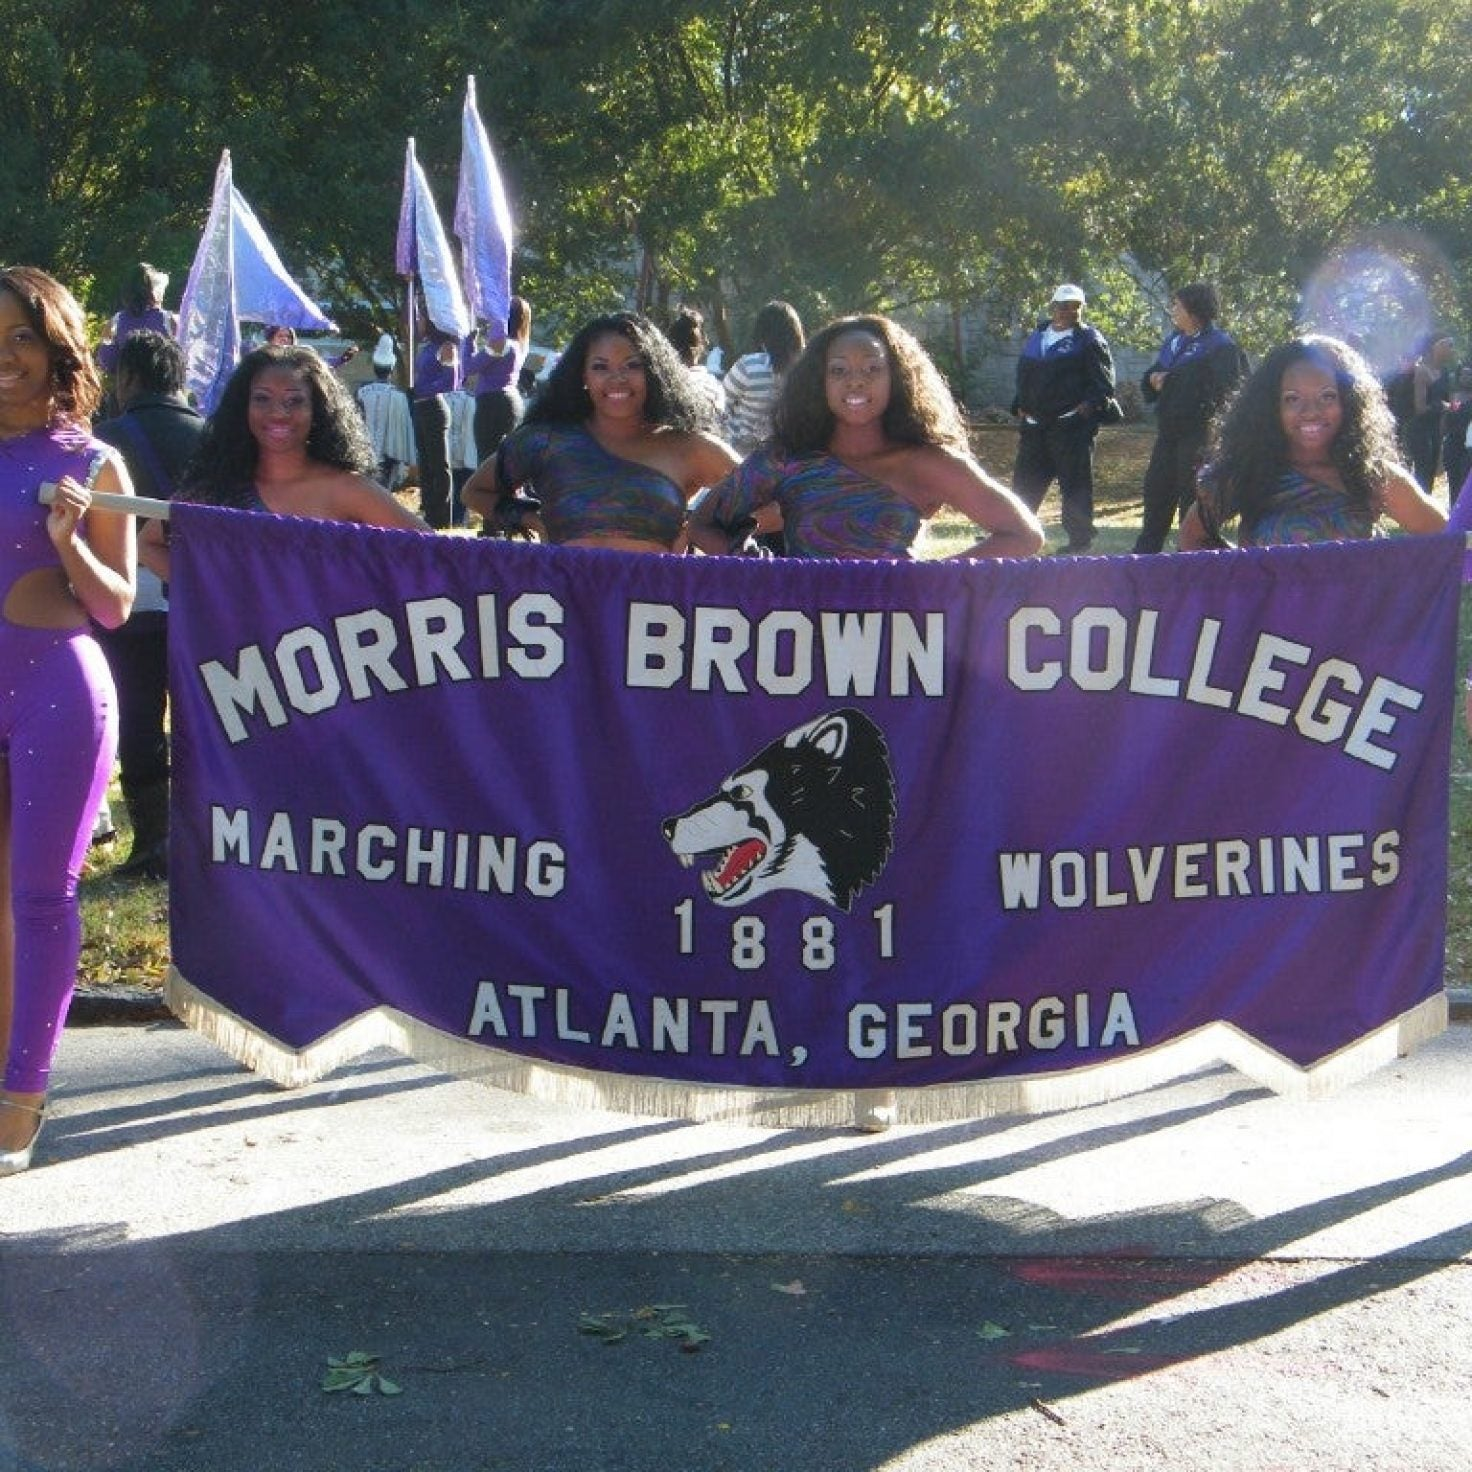 Morris Brown College One Step Closer To Regaining Accreditation After Nearly 20 Years!